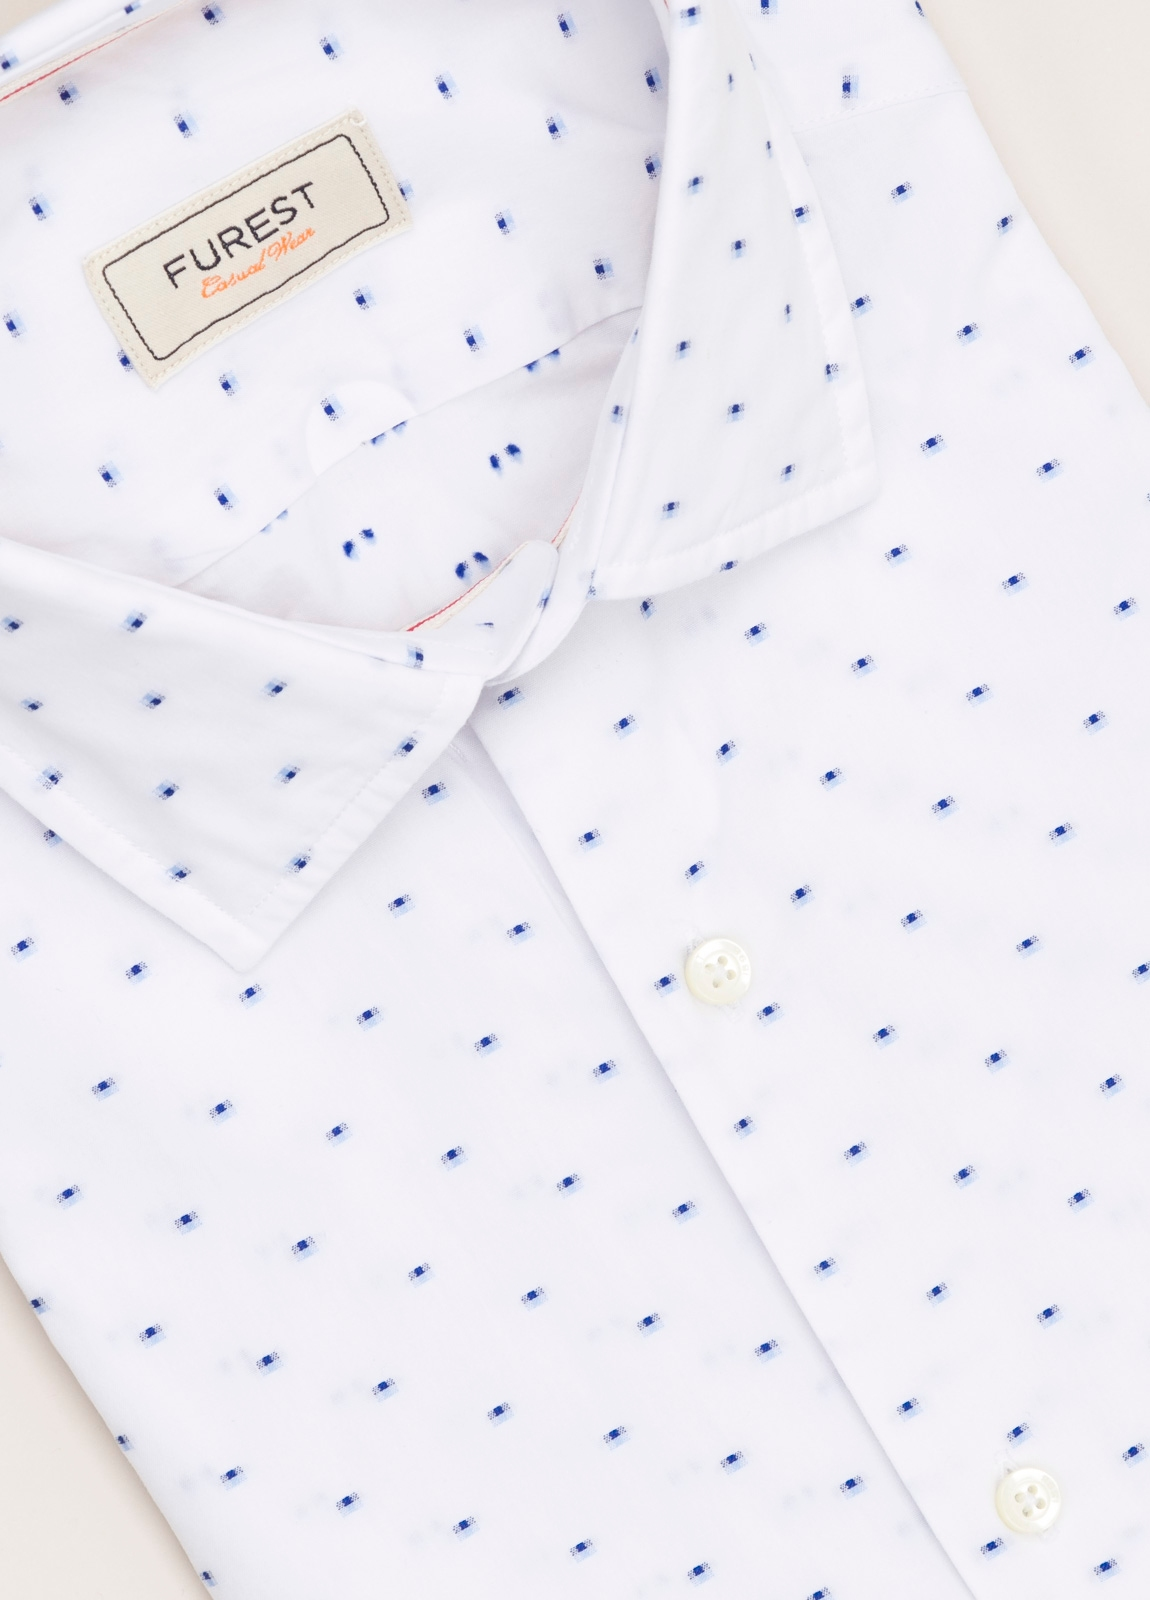 Camisa Casual Wear FUREST COLECCIÓN slim fit fil coupé blanco - Ítem1